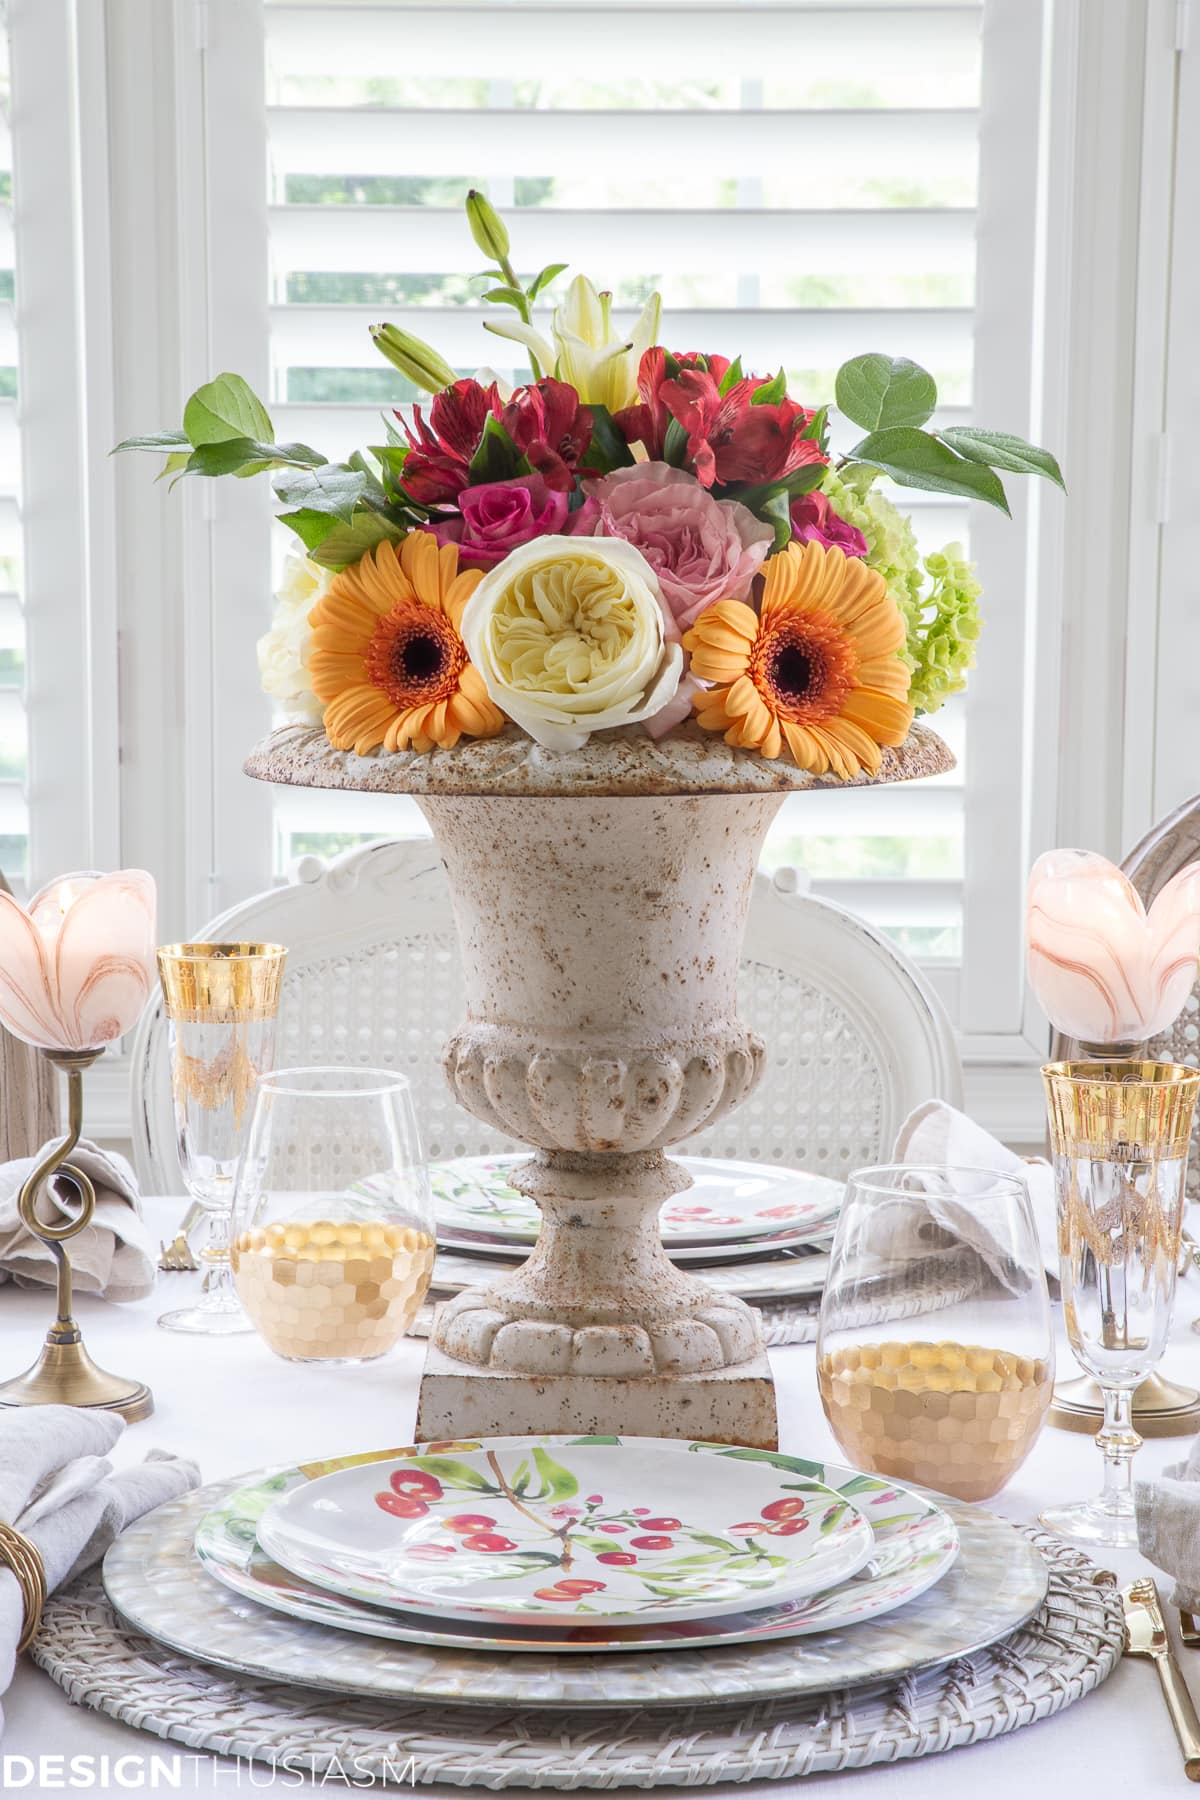 informal table setting with flowers in garden urn